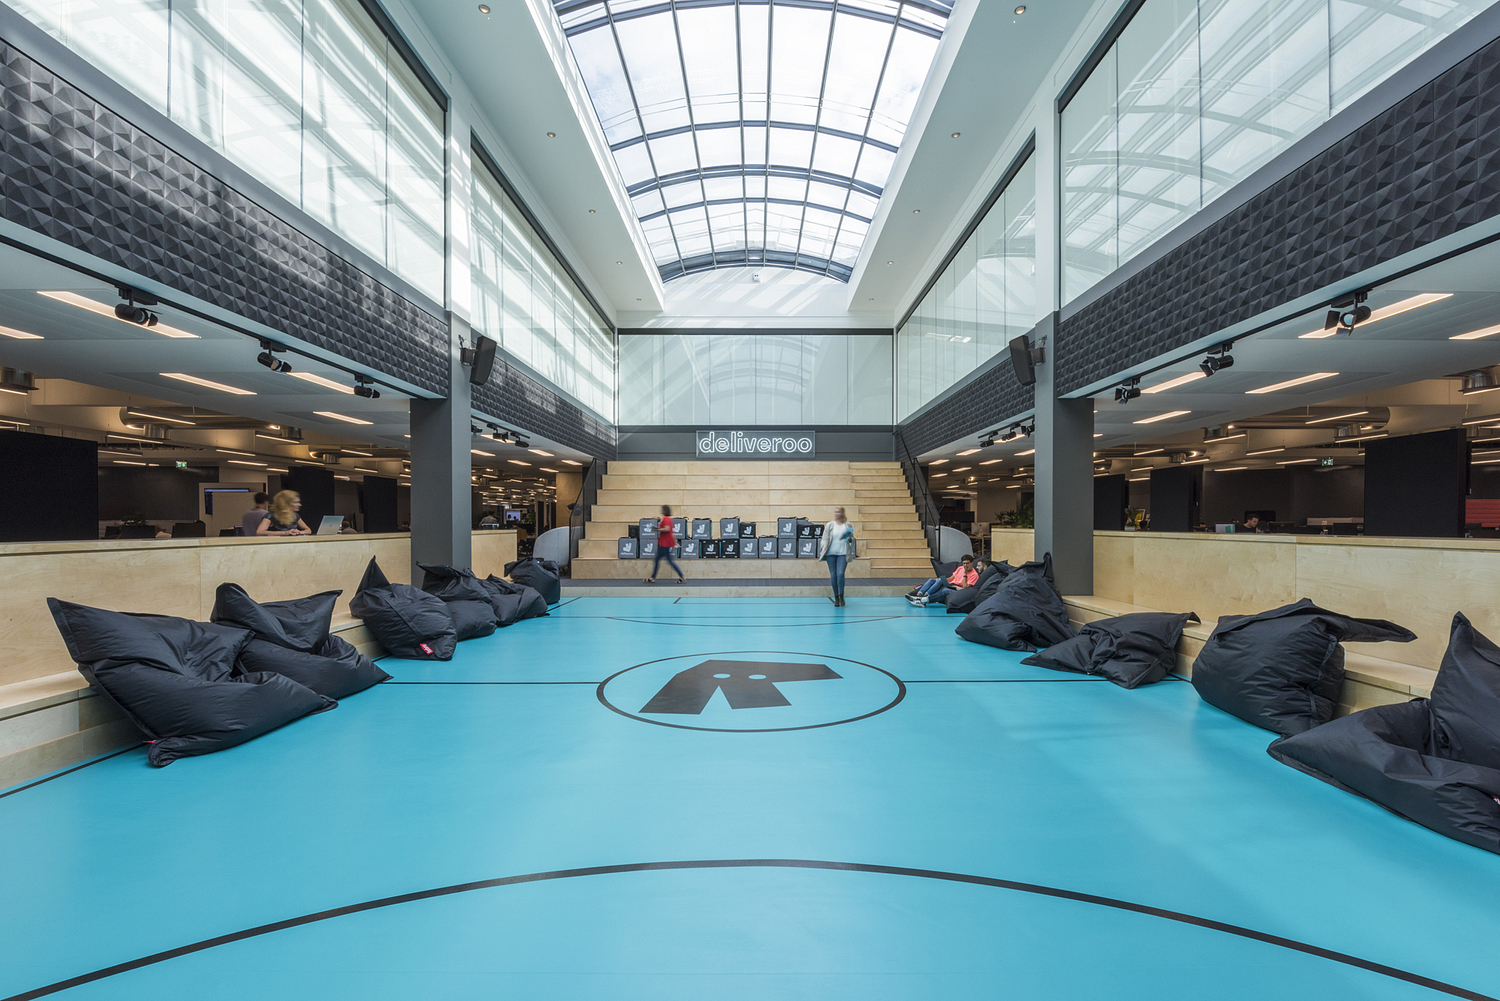 The Roo-ball pitch, Deliveroo offices, London